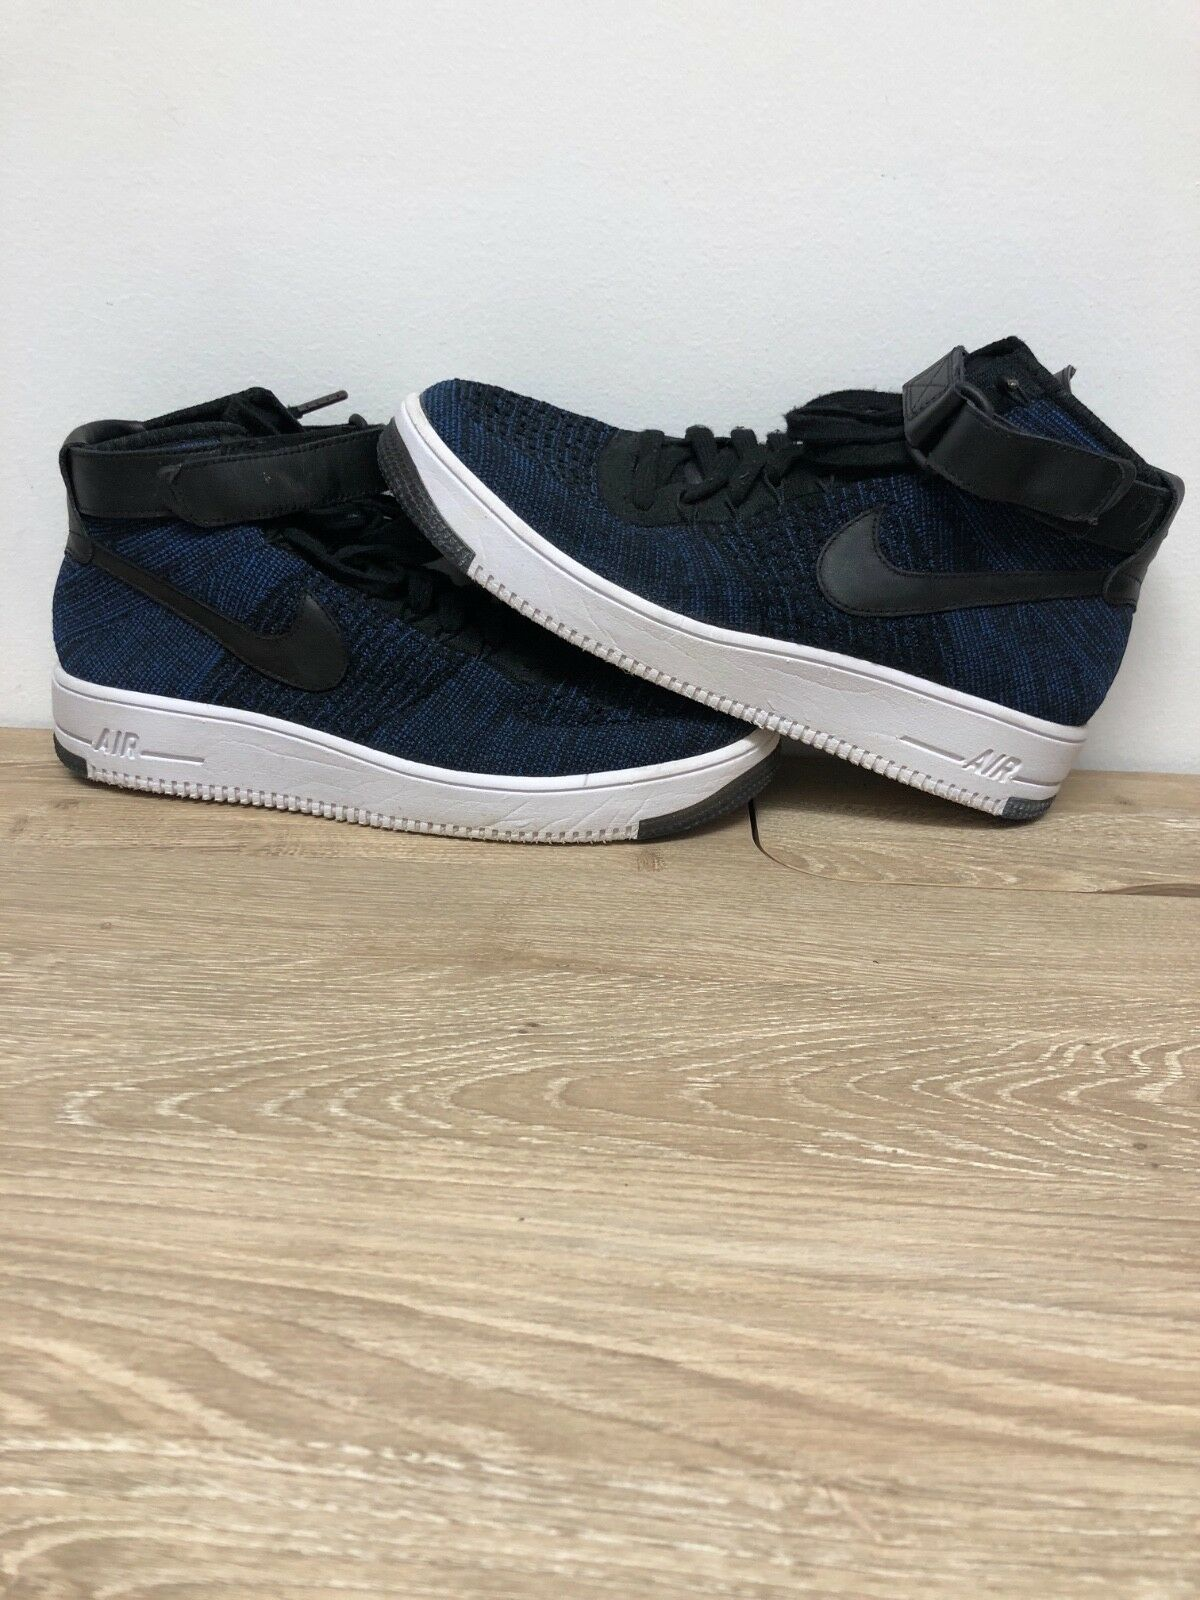 Nike Airforce 1 High Flynit bluee Size 10 Great Conditon